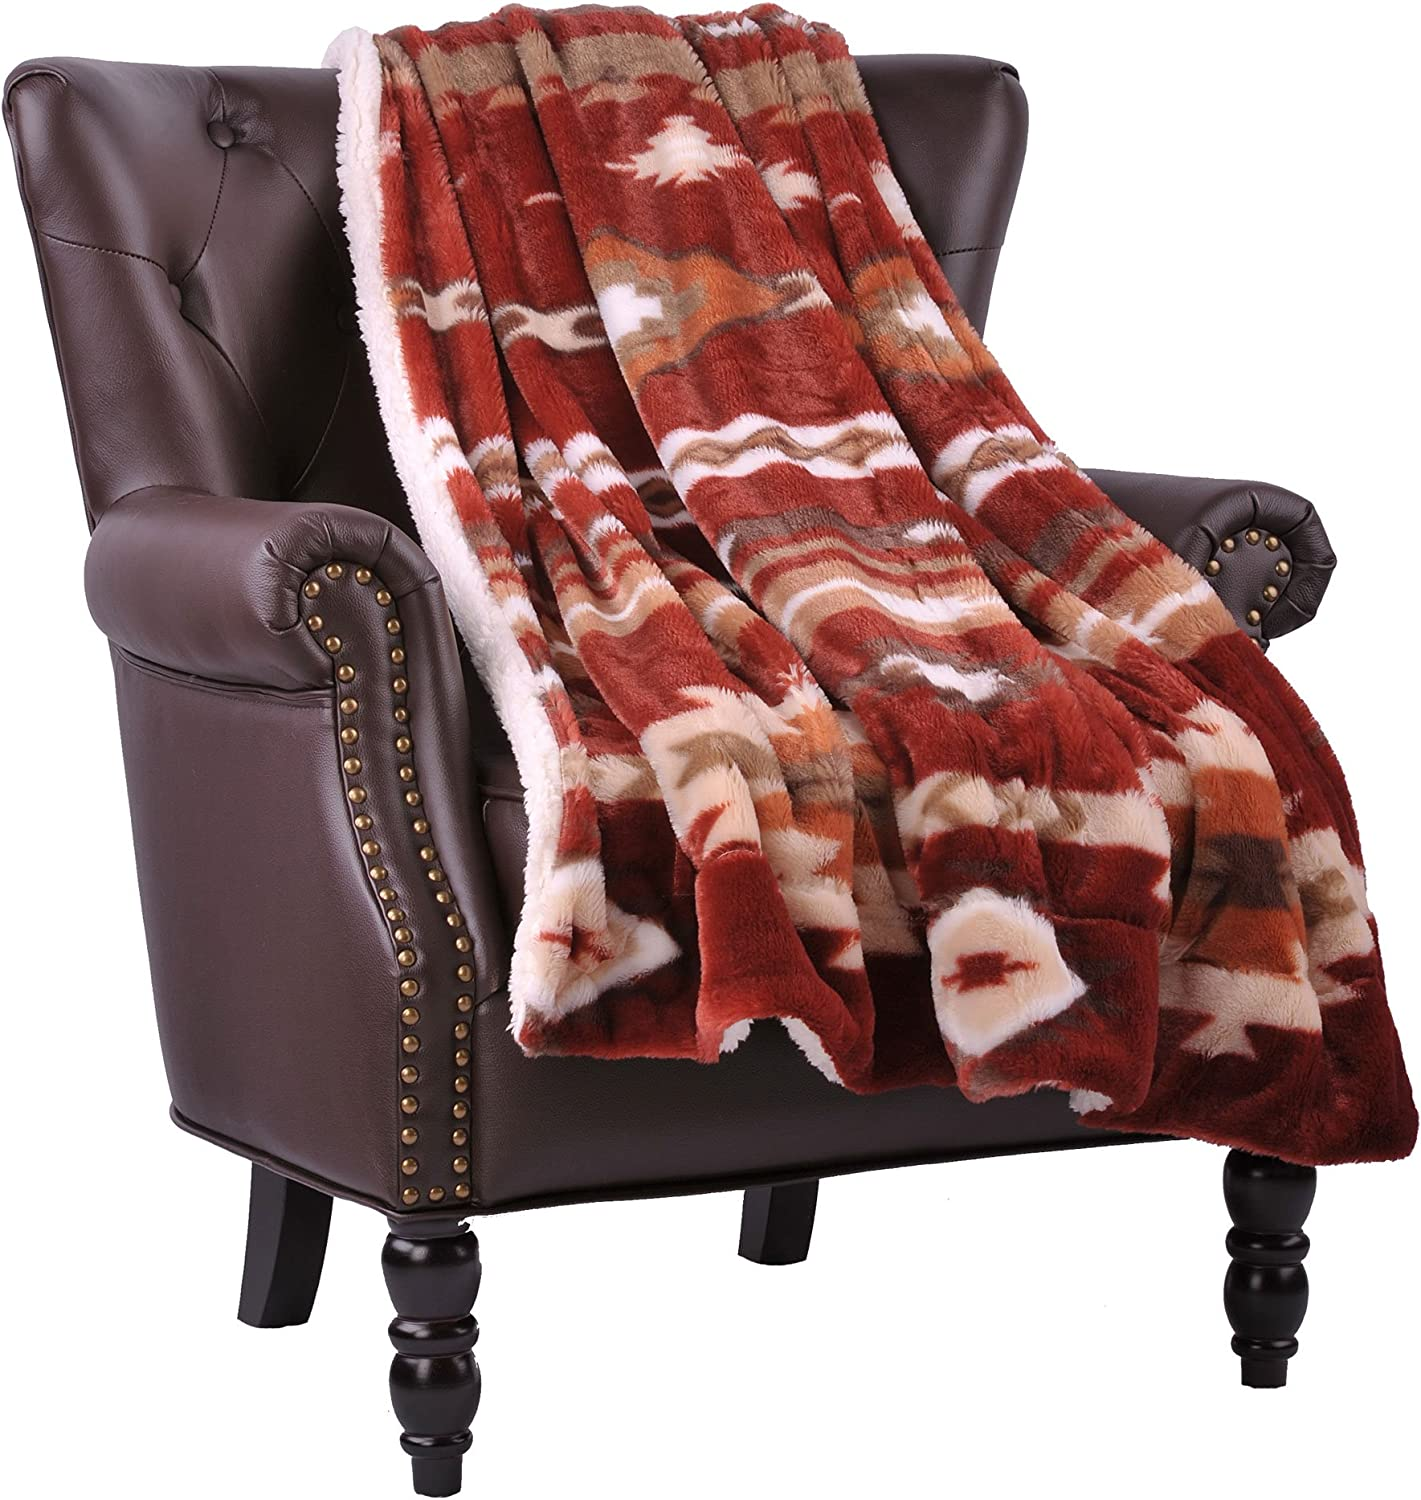 """Home Soft Things Southwest Throw Blanket 50"""" x 60"""" Brick Red"""